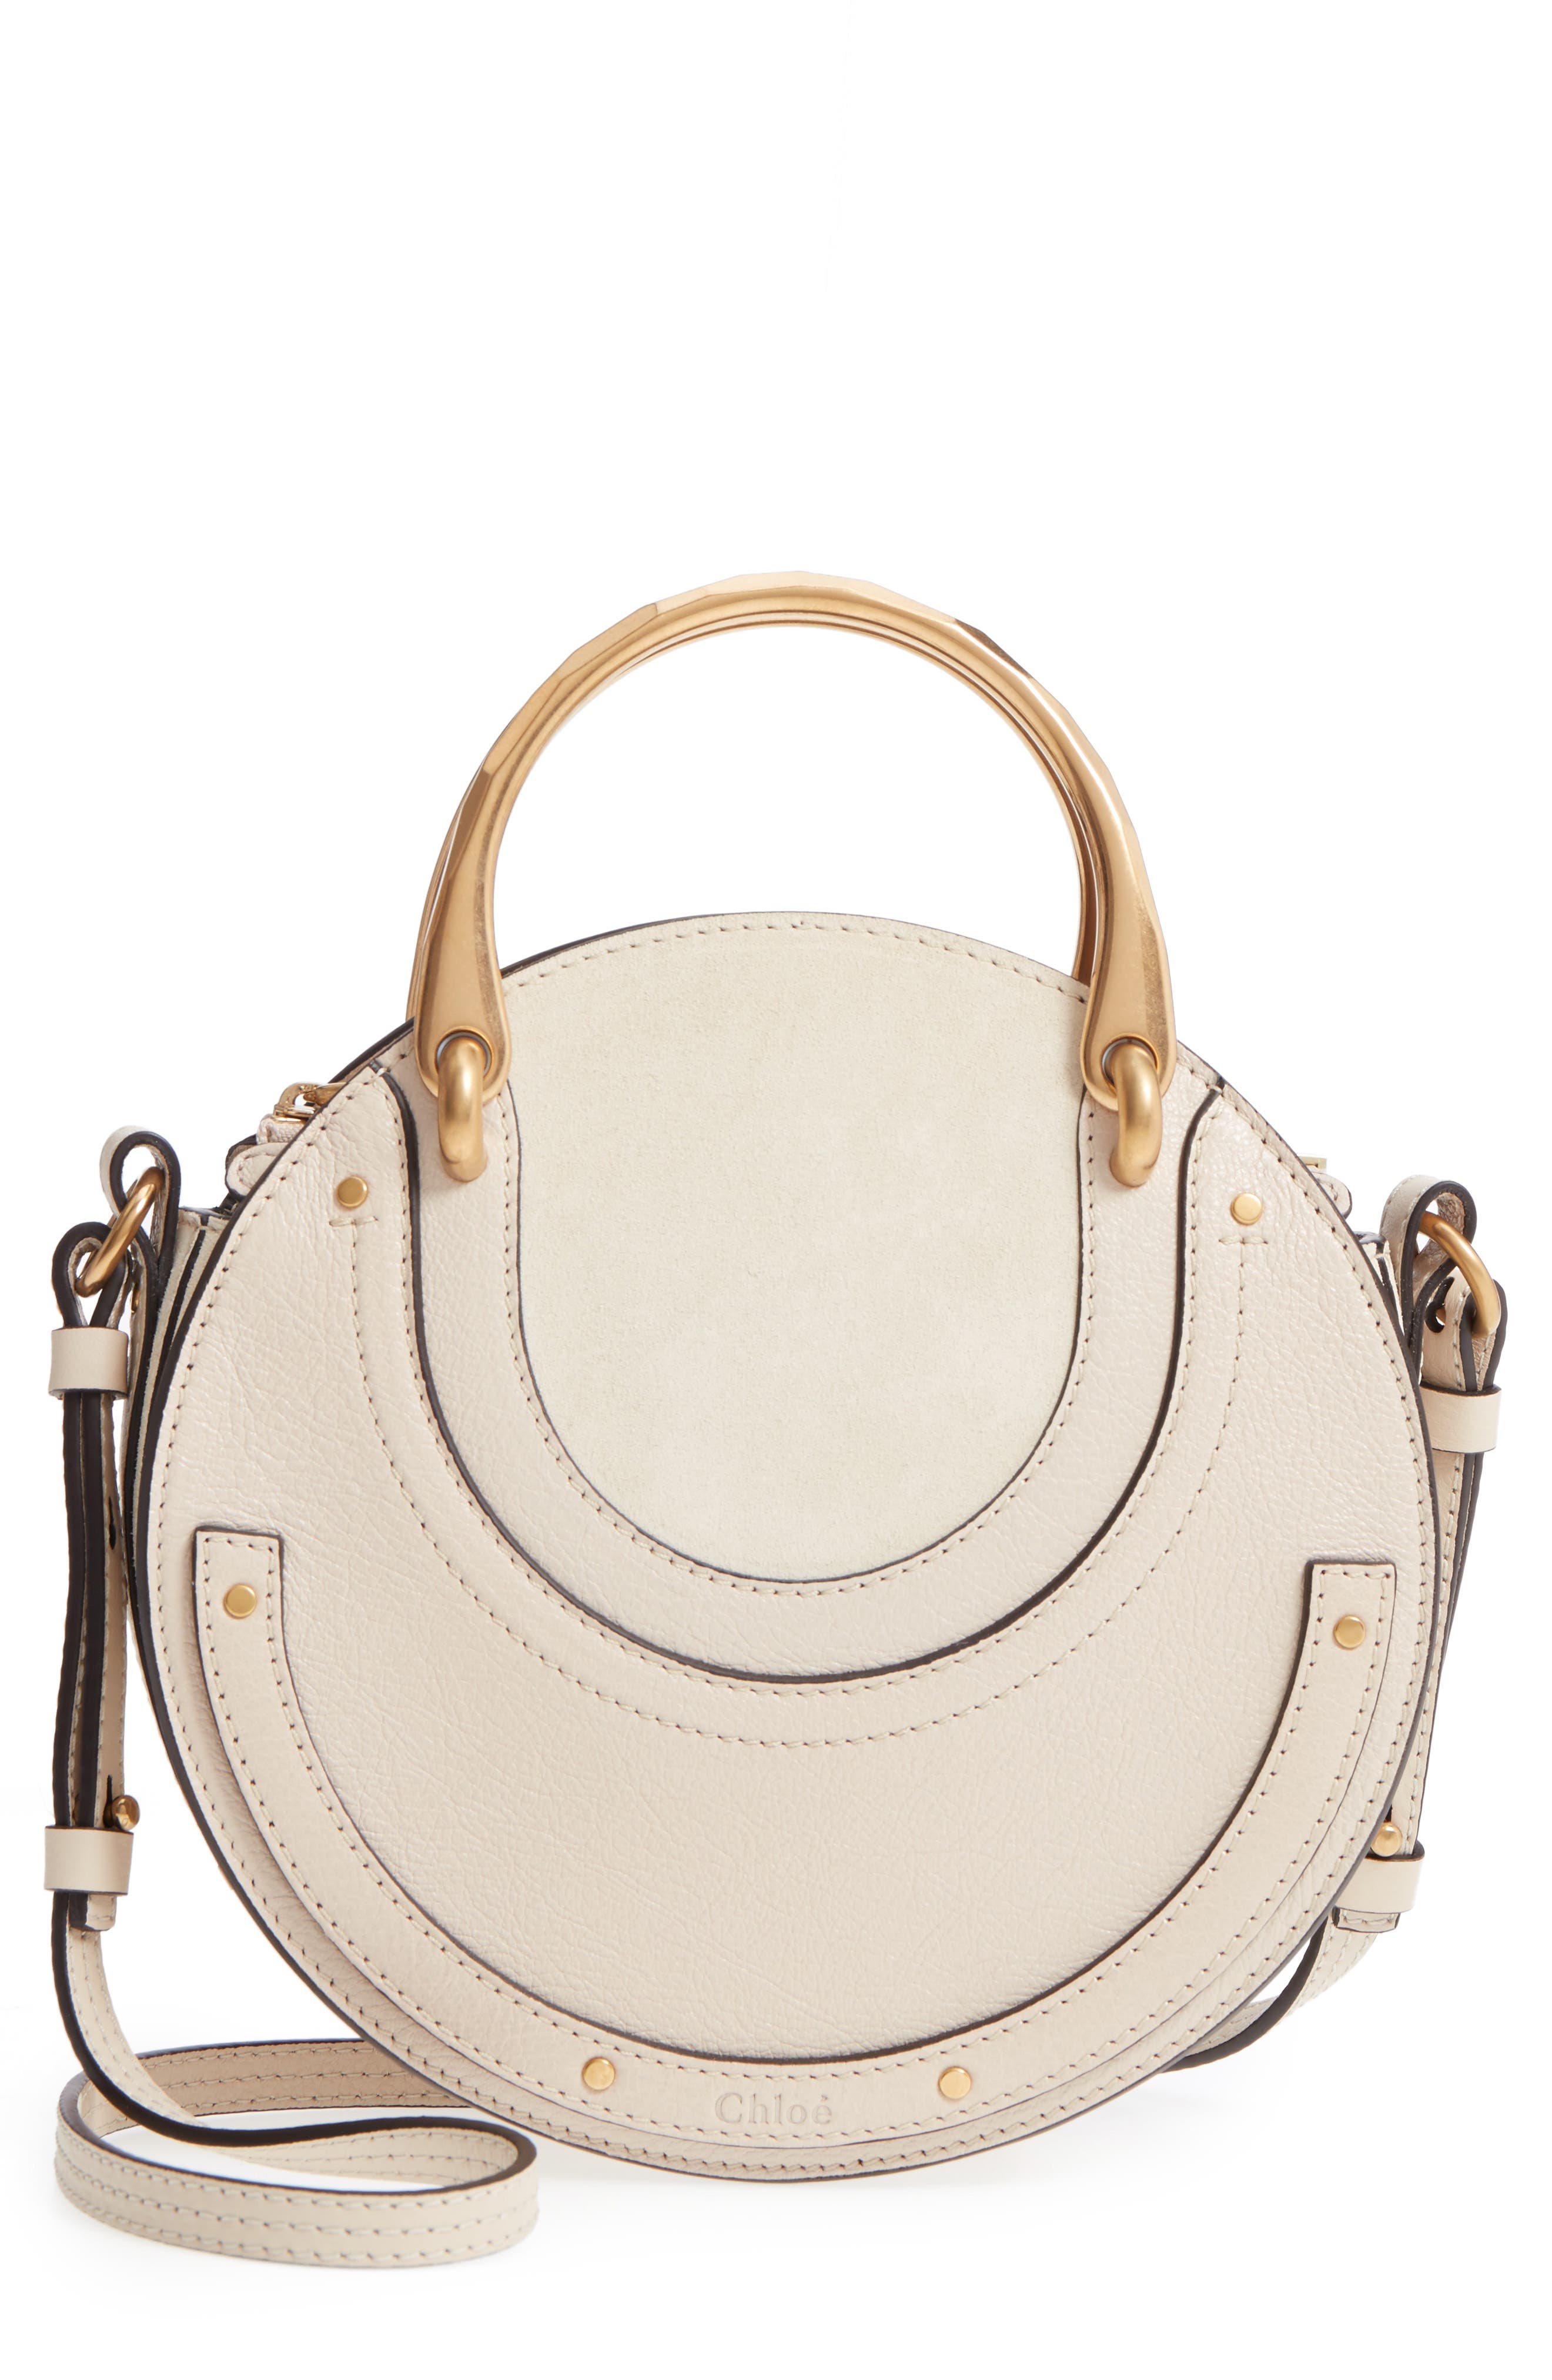 Alternate Image 1 Selected - Chloé Pixie Leather Crossbody Bag